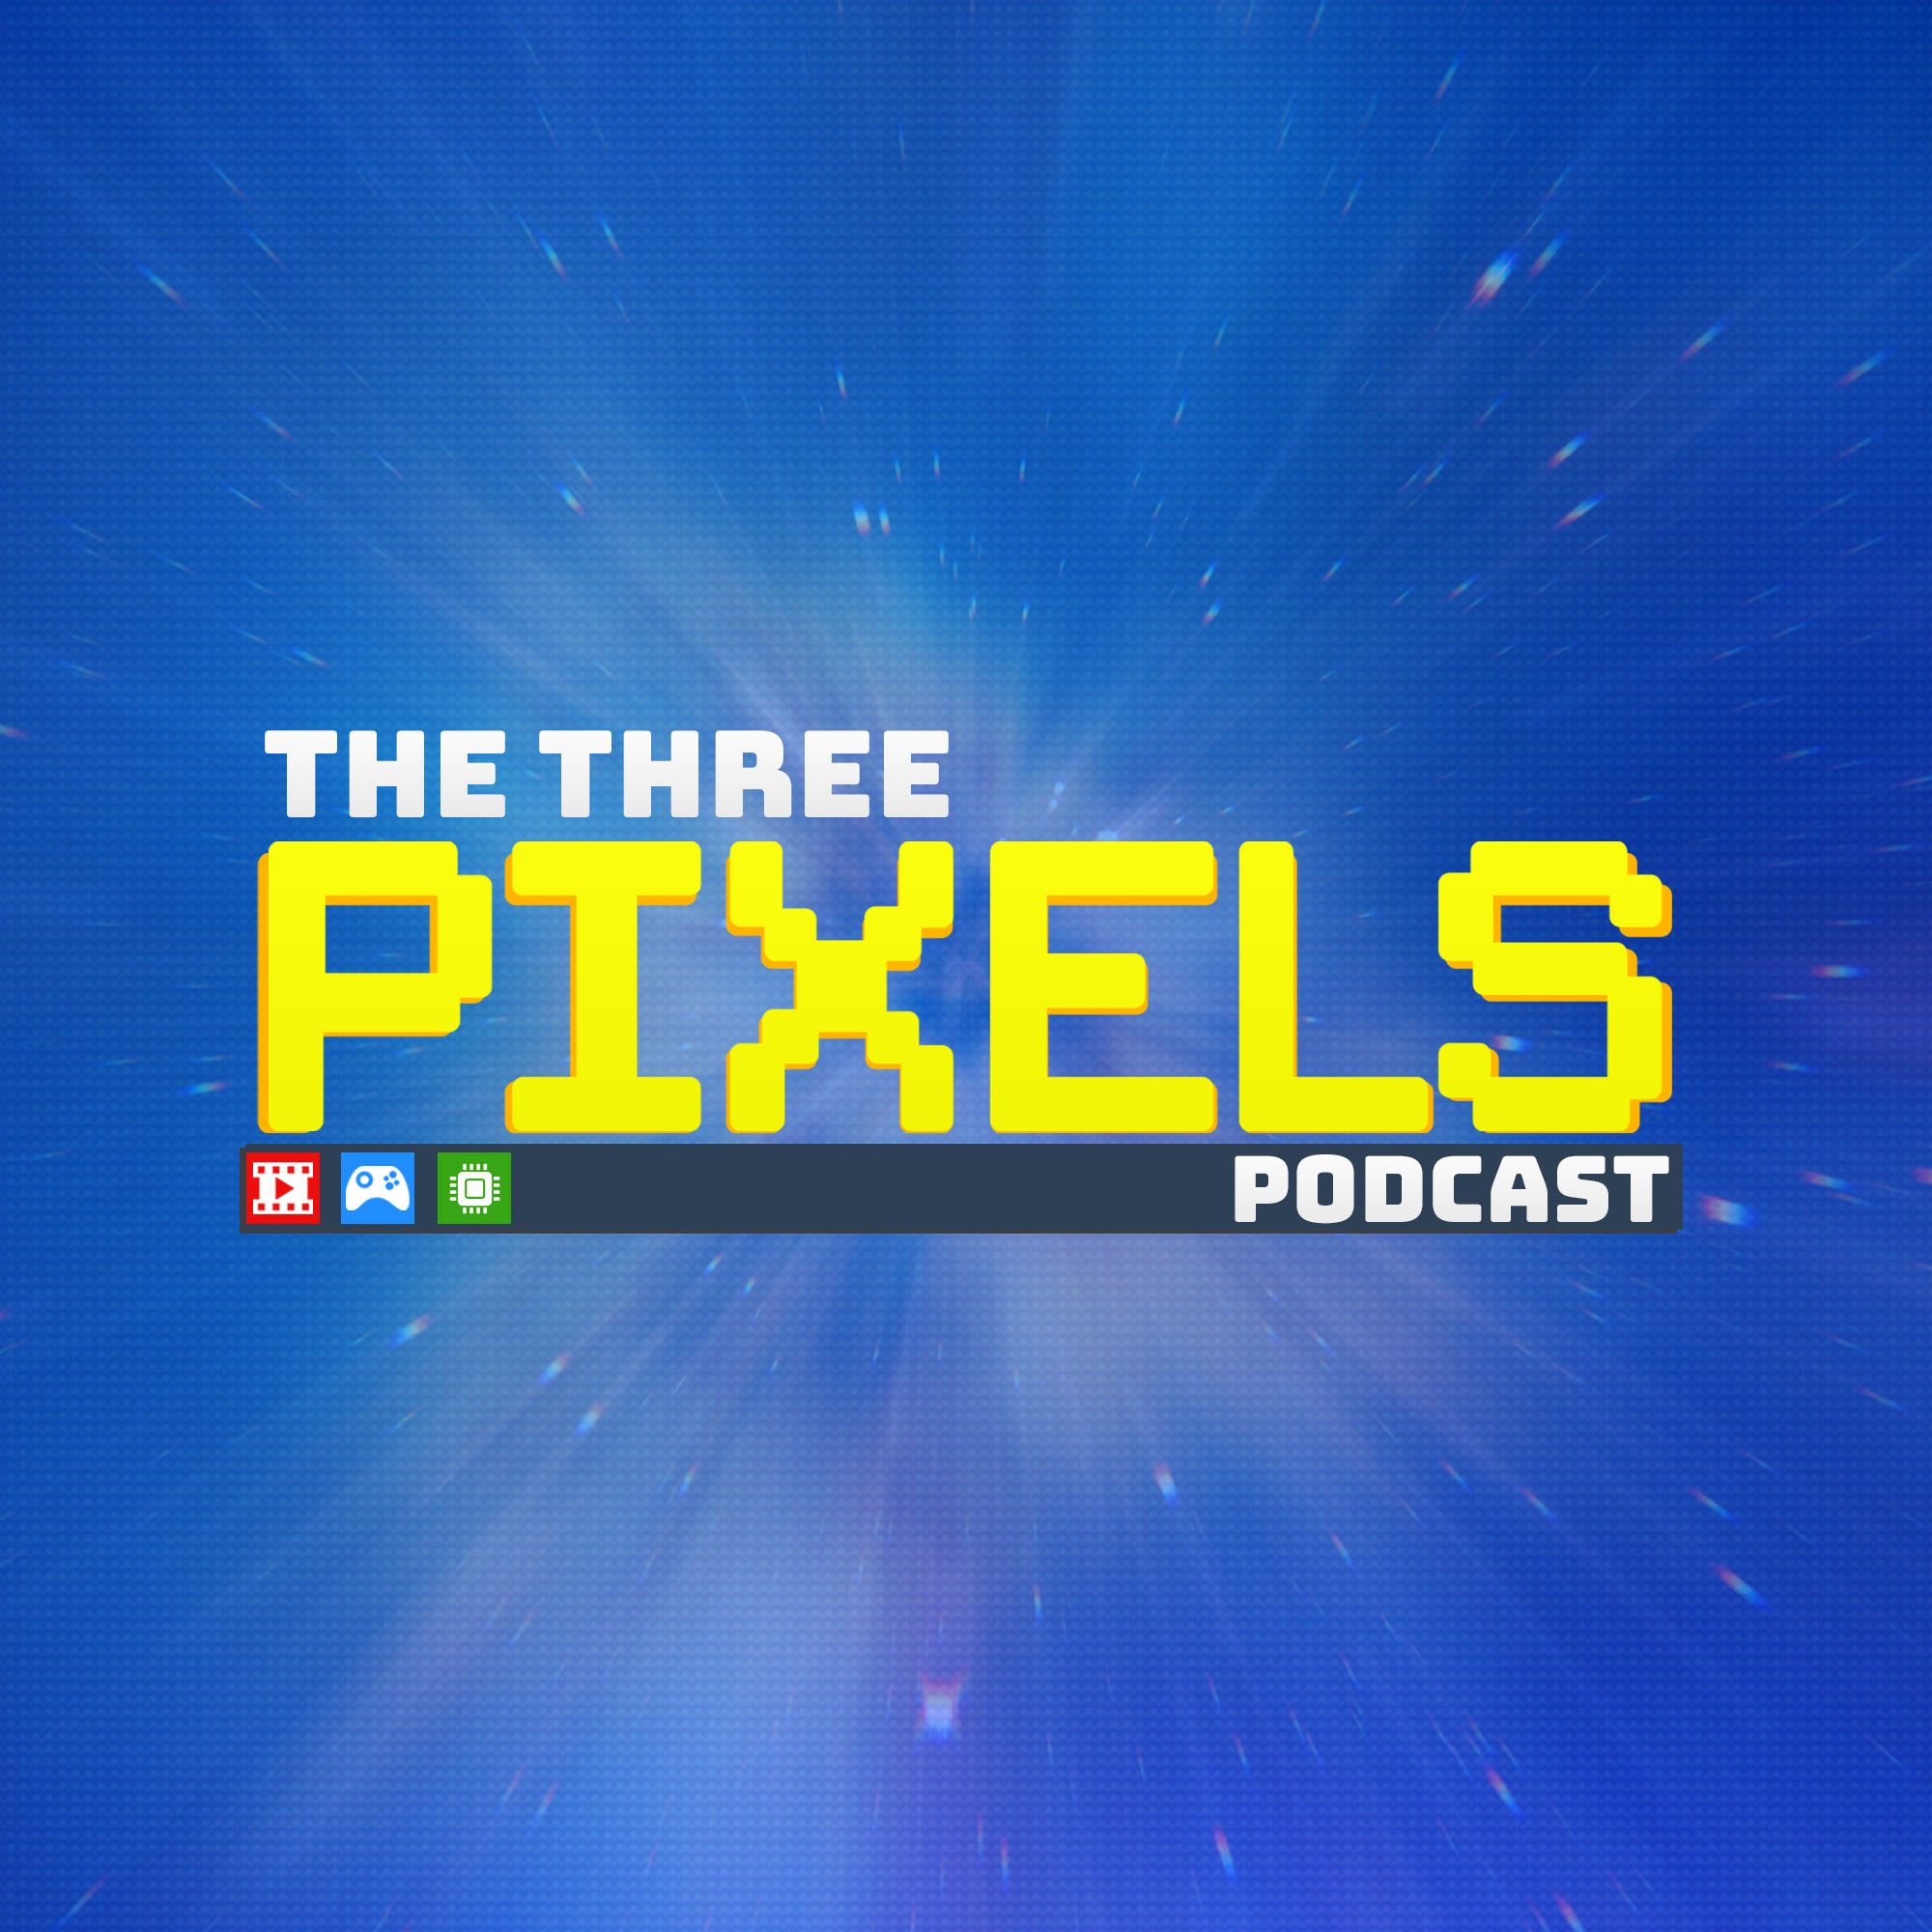 By The Three Pixels Podcast & Abrupt Audio